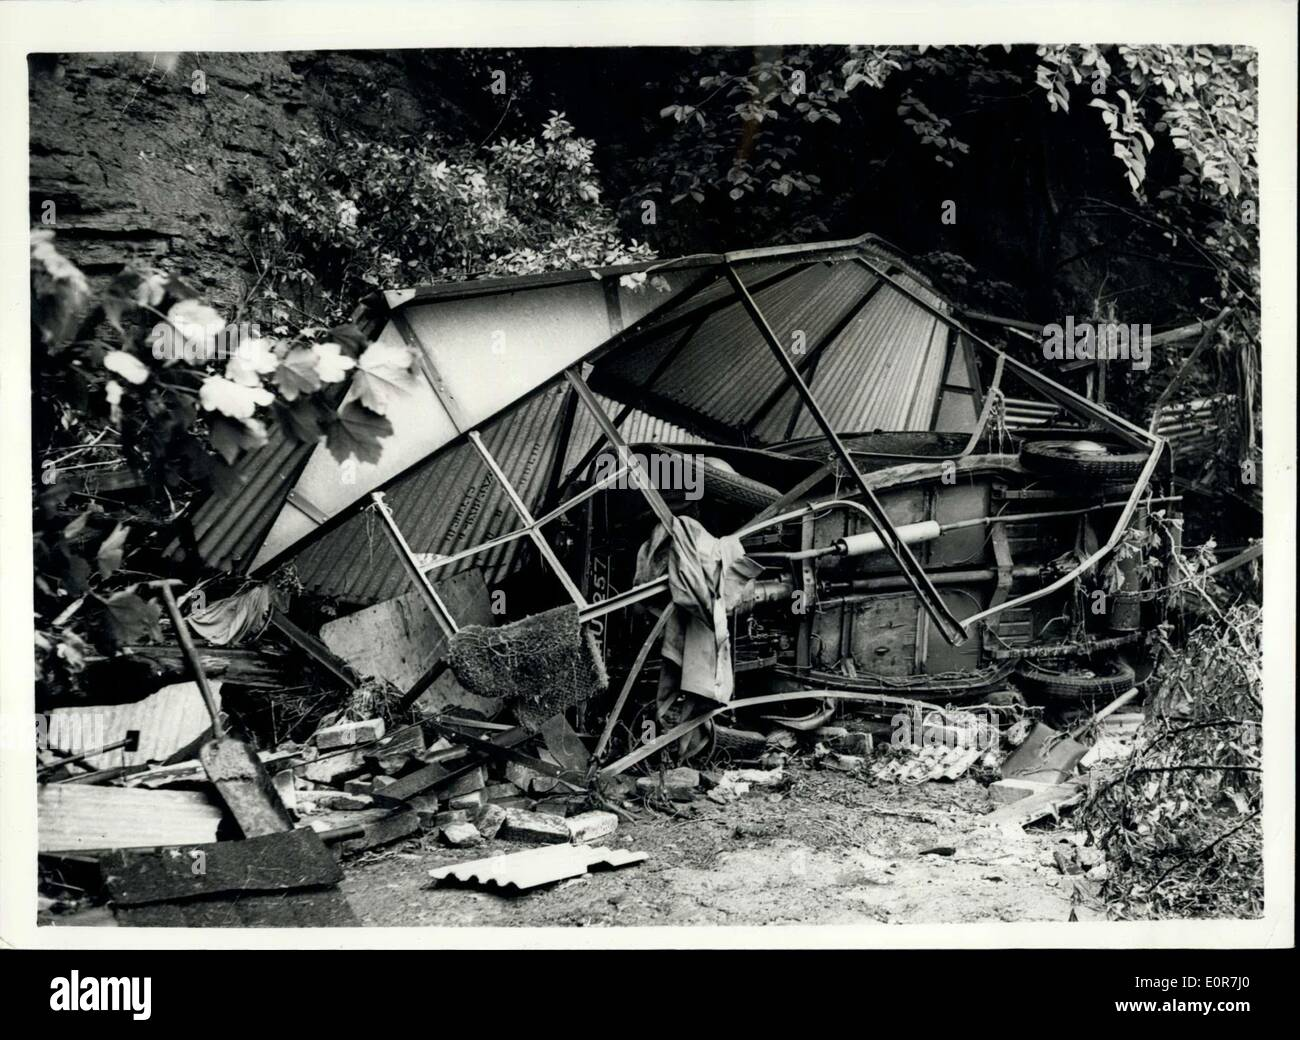 Jul. 04, 1958 - Car and Garage washed away in the sheffield floods: Photo Shows A Garage and car after it had been washed 200 yards from its mooring at Moscow cottages, Abbeydale, Sheffield during the heavy floods which covered vast areas following the heavy rains. - Stock Image